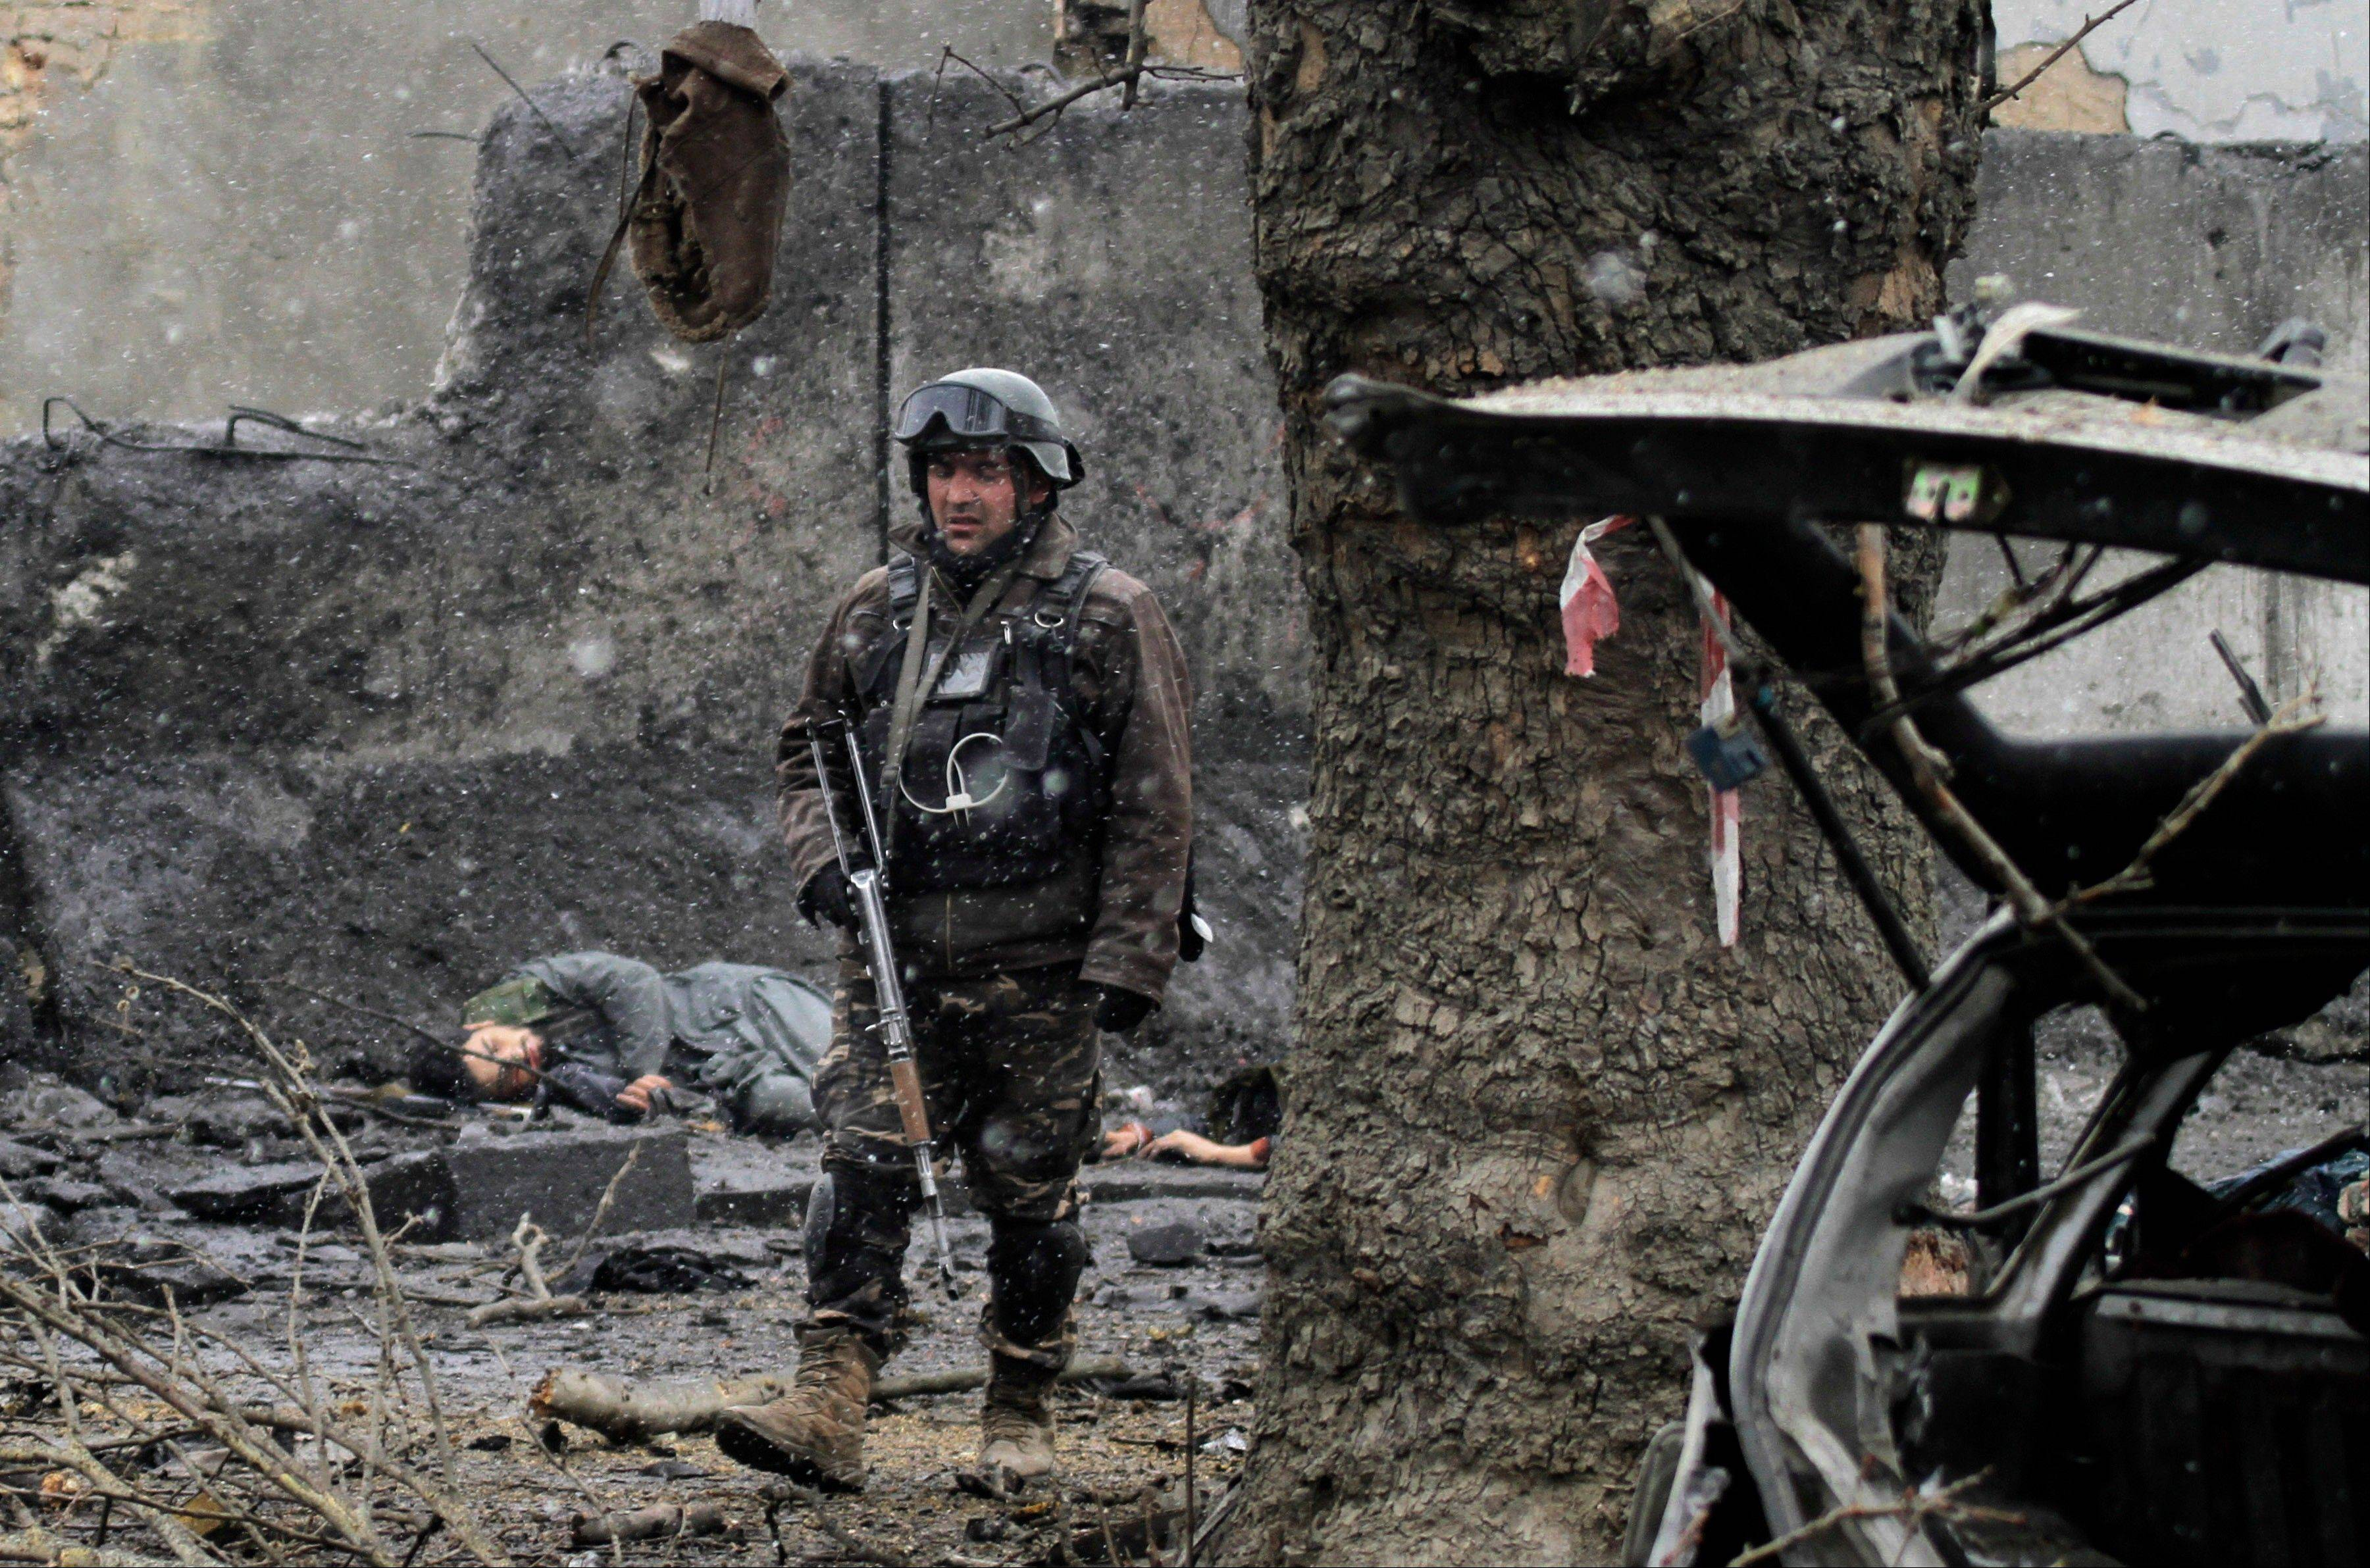 An Afghan security guard walks at the scene after an attack by militants Wednesday in Kabul, Afghanistan.